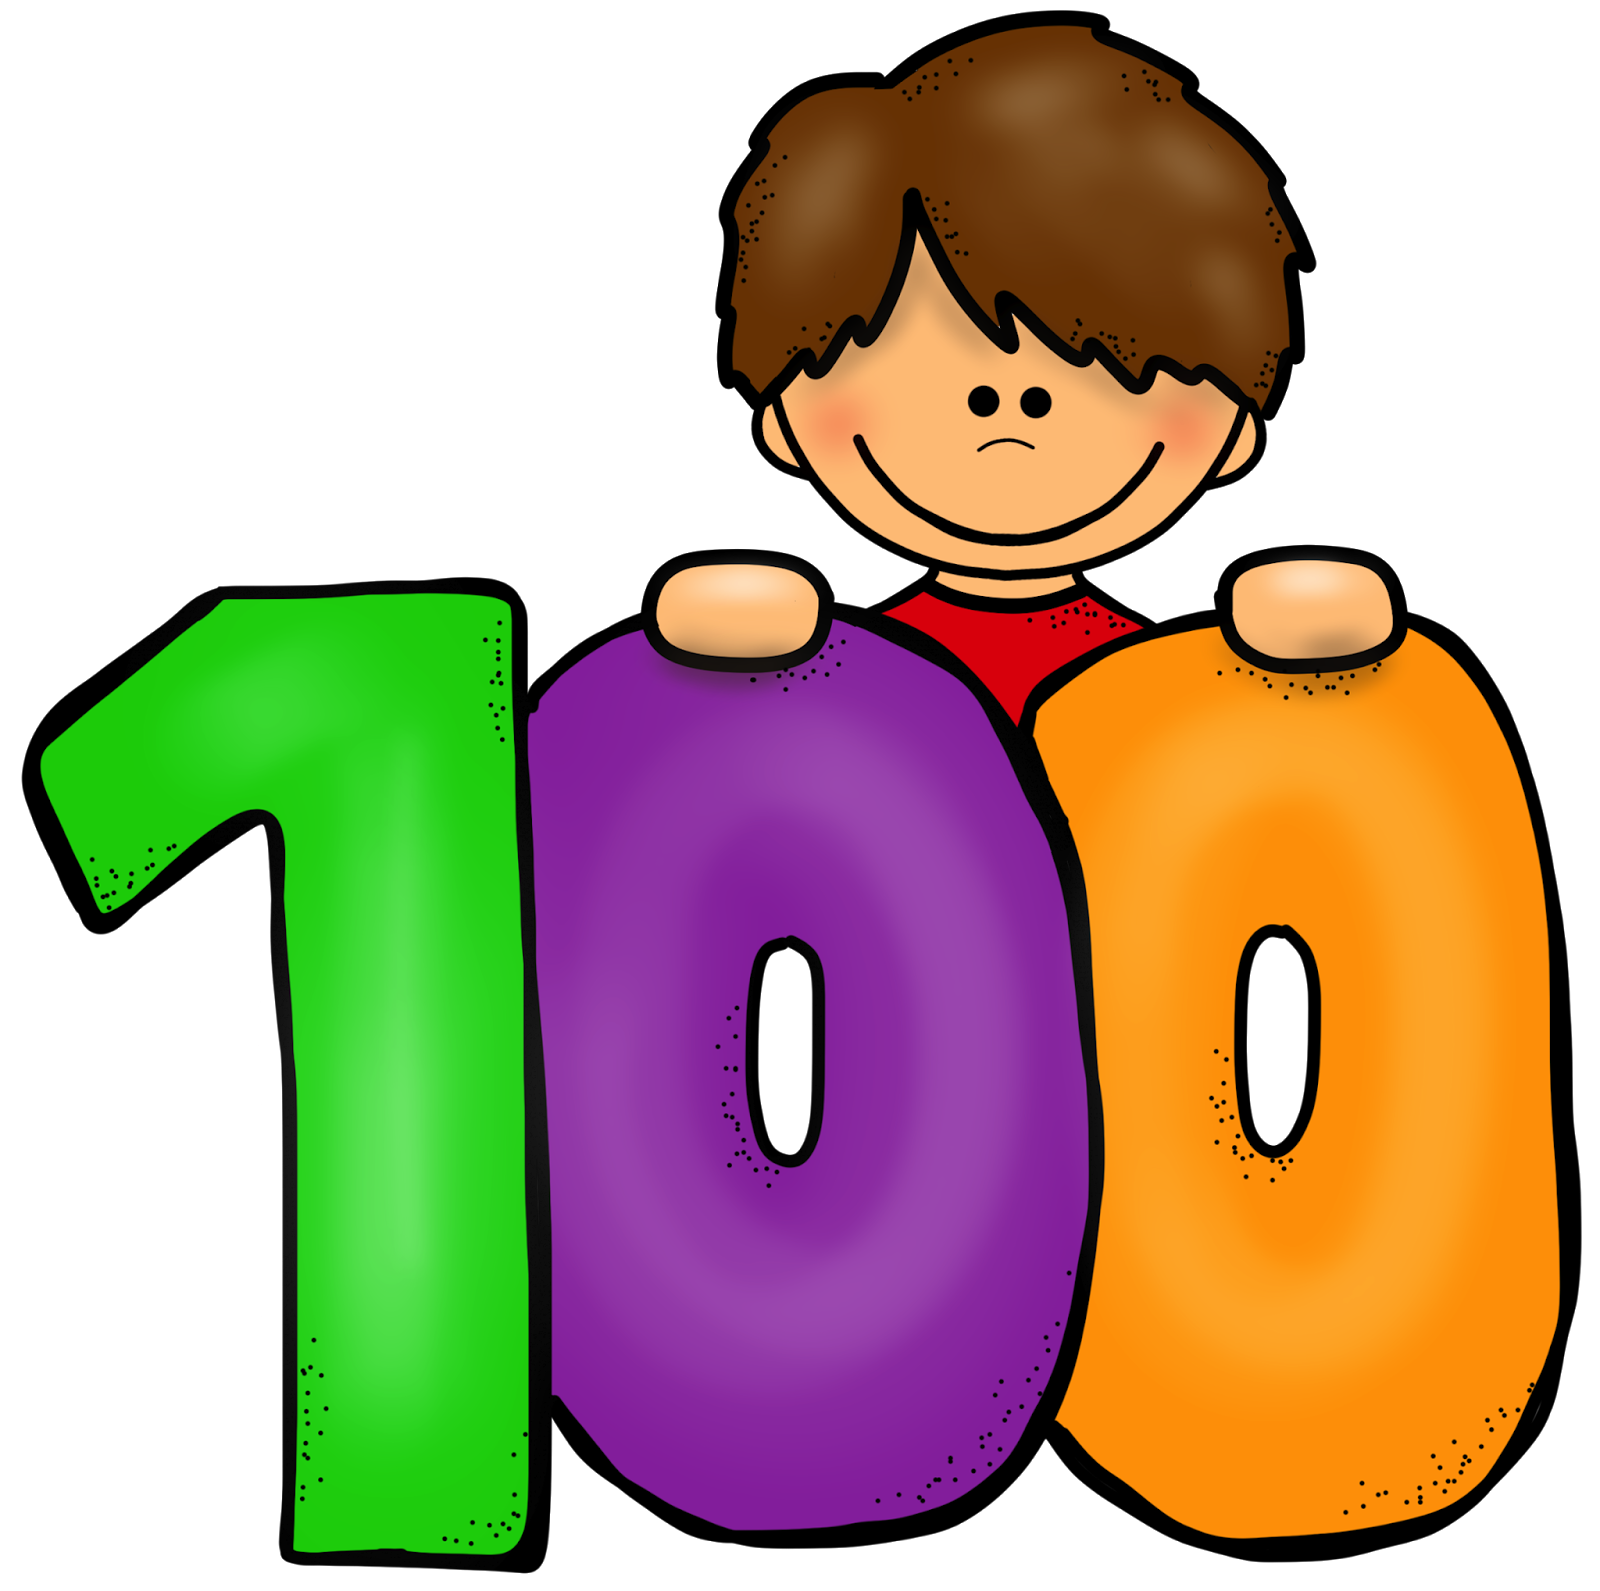 learning activities for kids 100th day of school free spring clipart for teachers free spring clipart for teachers